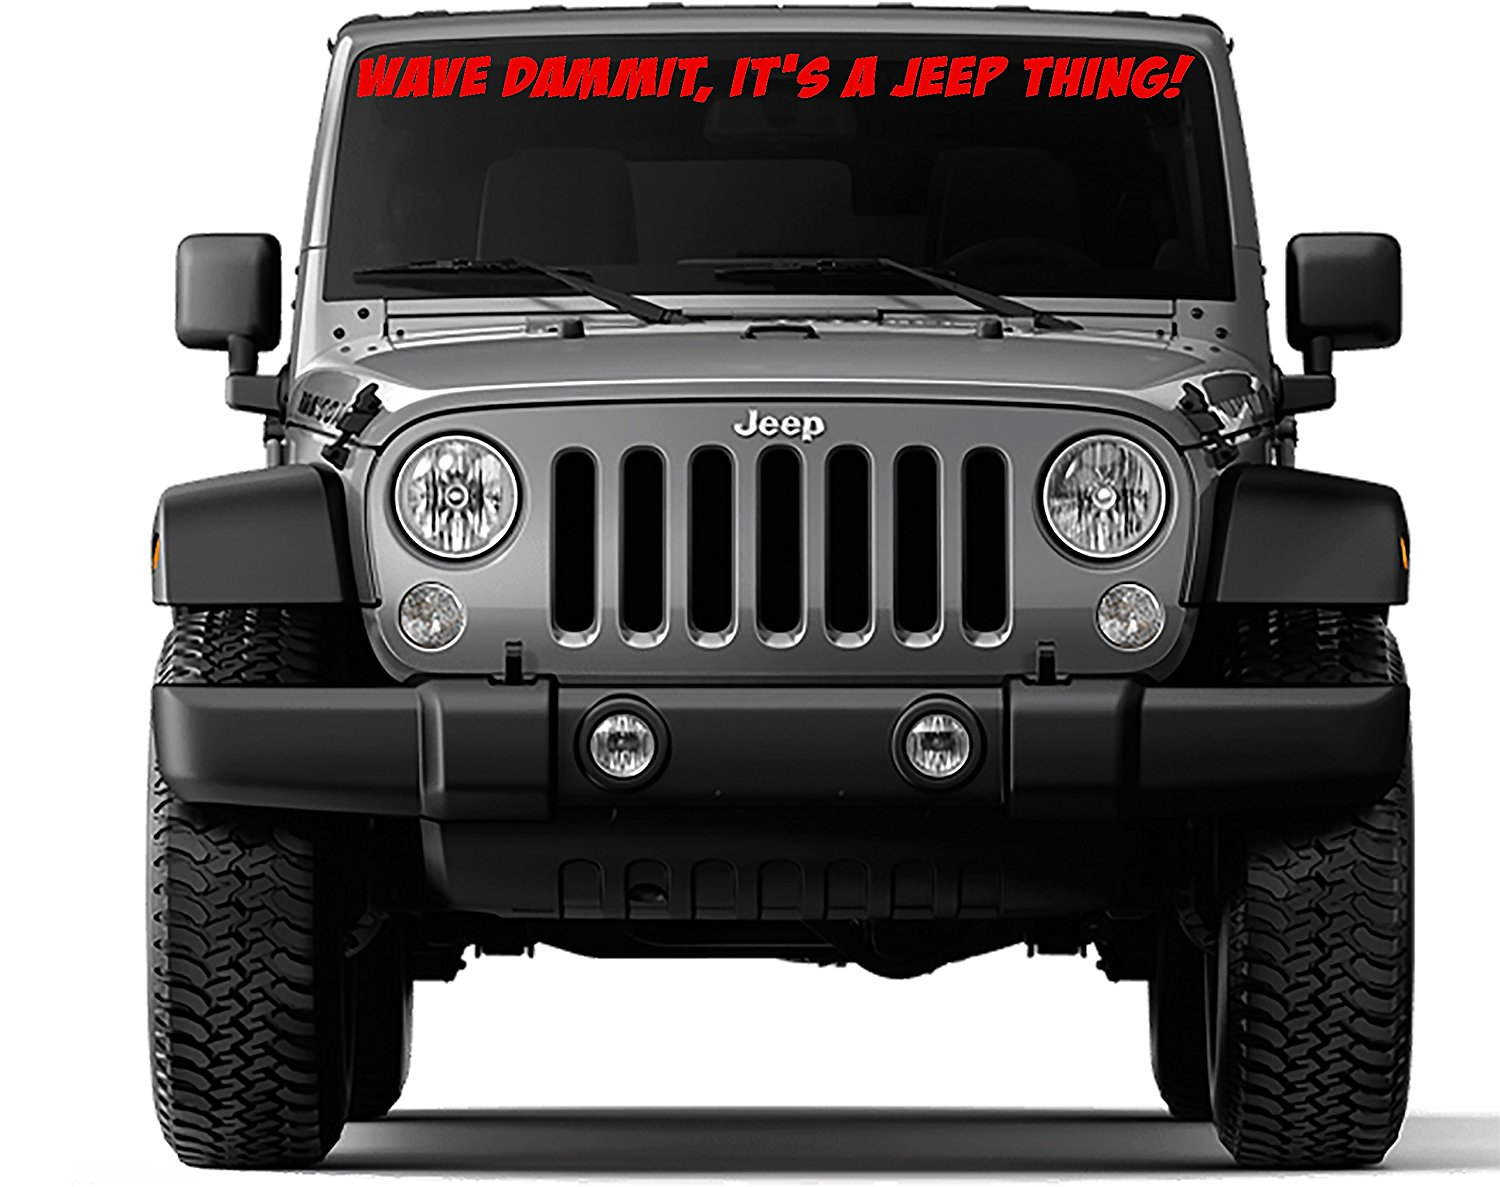 Cheap Decal Jeep Find Deals On Line At Alibabacom Wrangler Outline Get Quotations Front Windshield Sticker Wave Dammit Its A Thing For Tj 40